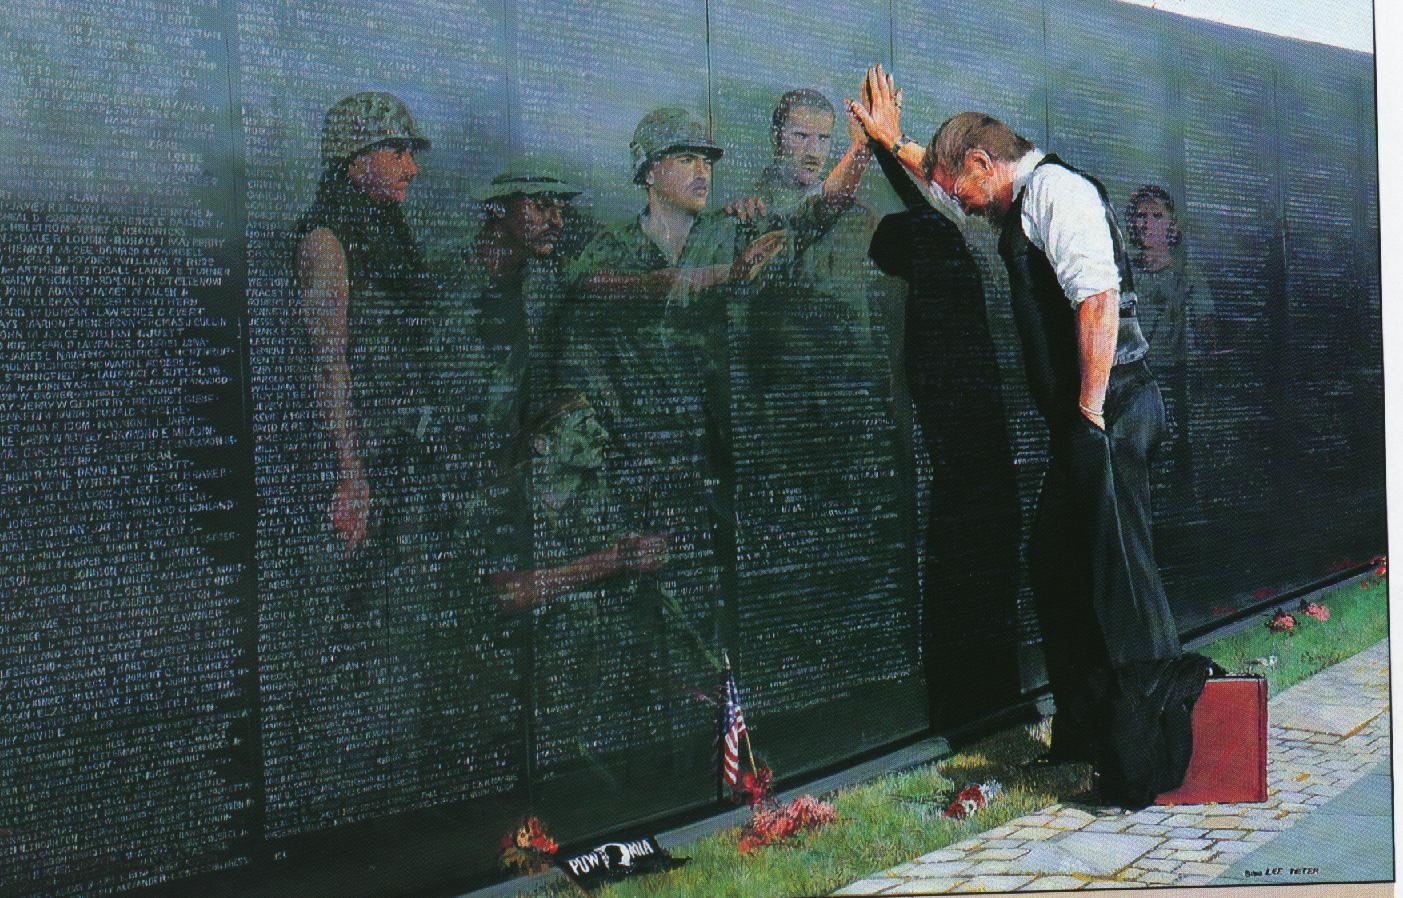 Vietnam Wall : ... of the vietnam wall in washington this photo brought tears to